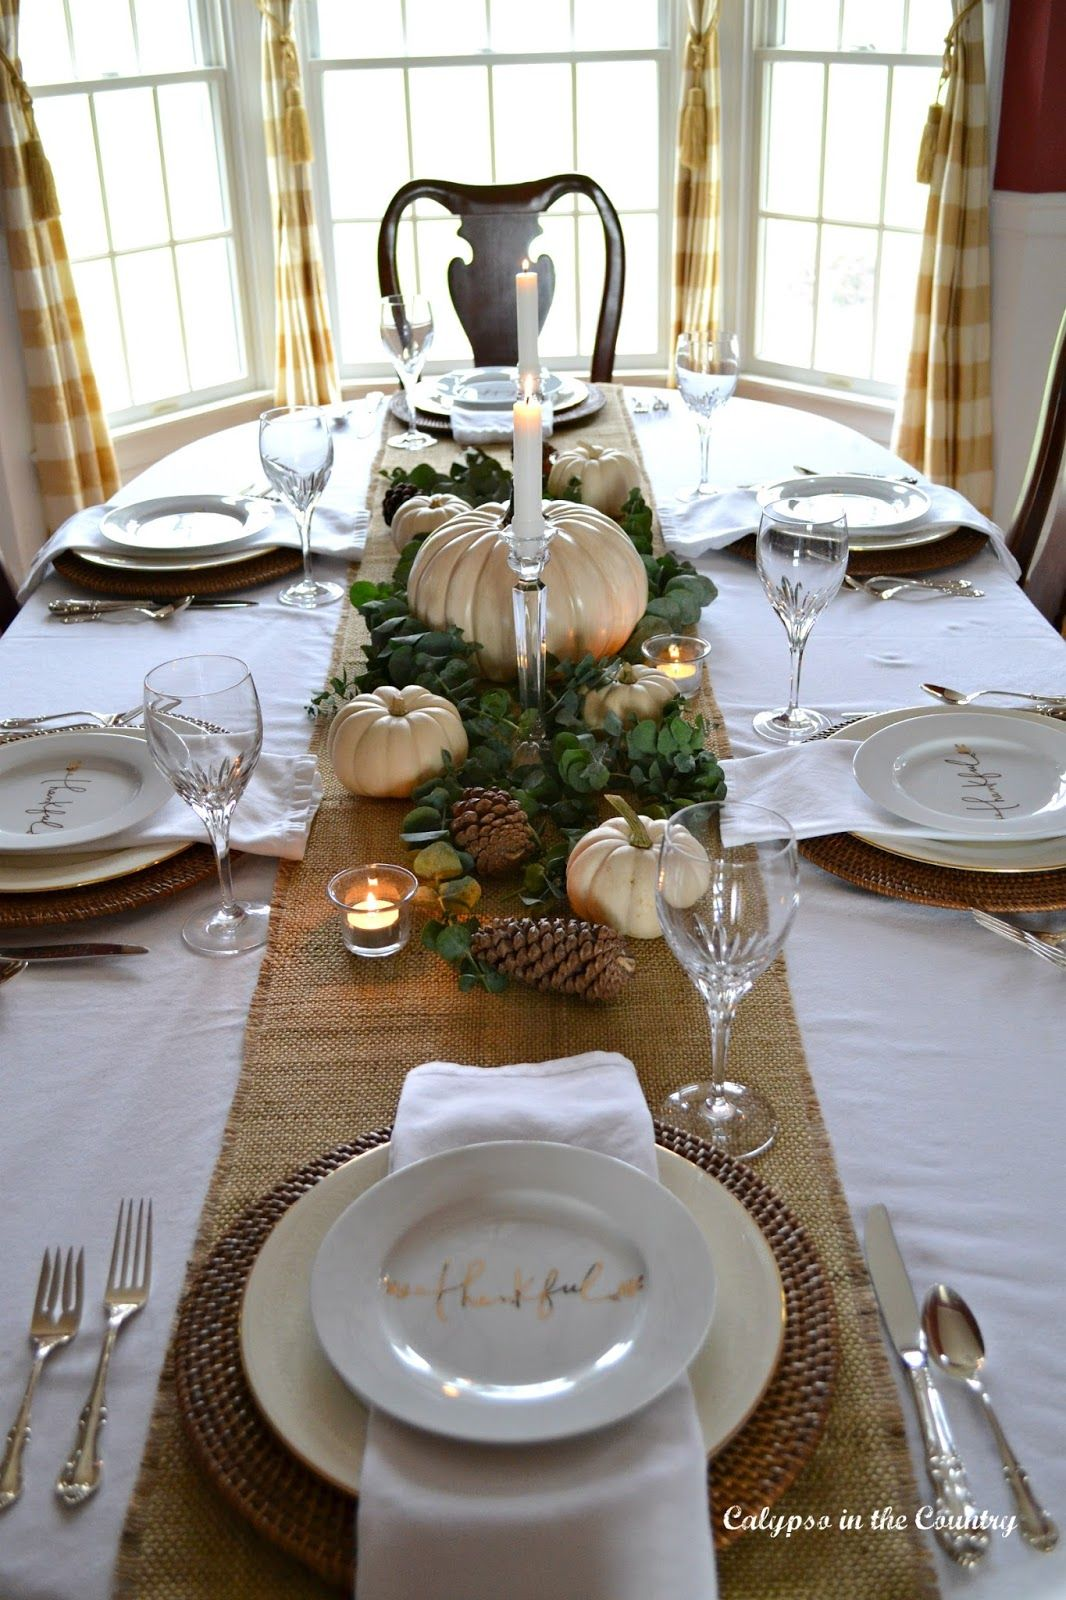 Thanksgiving Table Setting with White Pumpkins #thanksgivingtablesettings